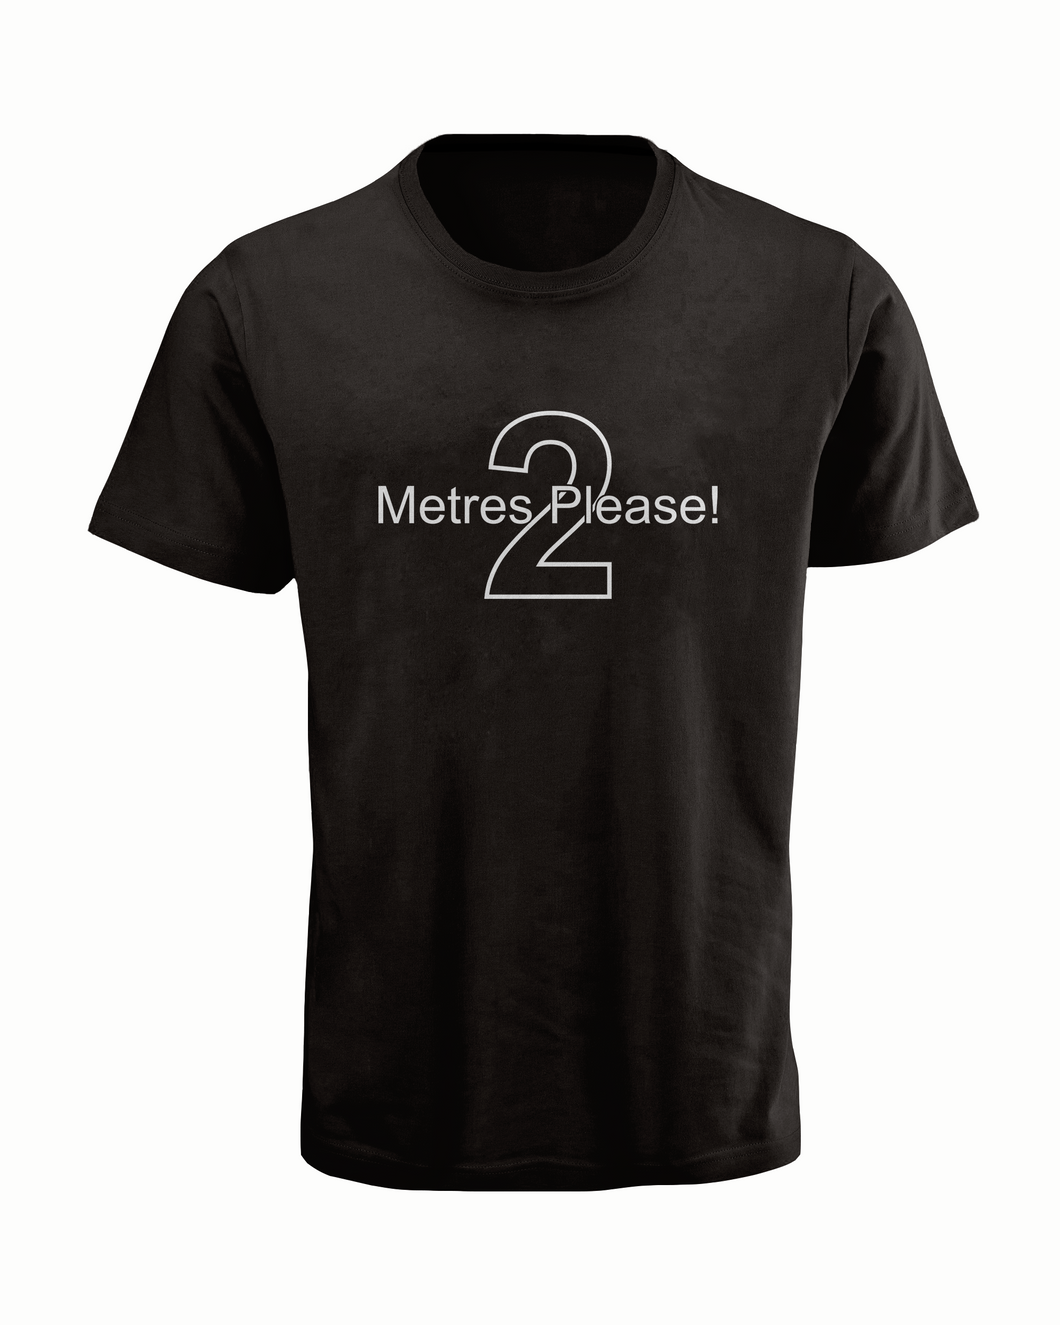 2M Please! T-Shirt